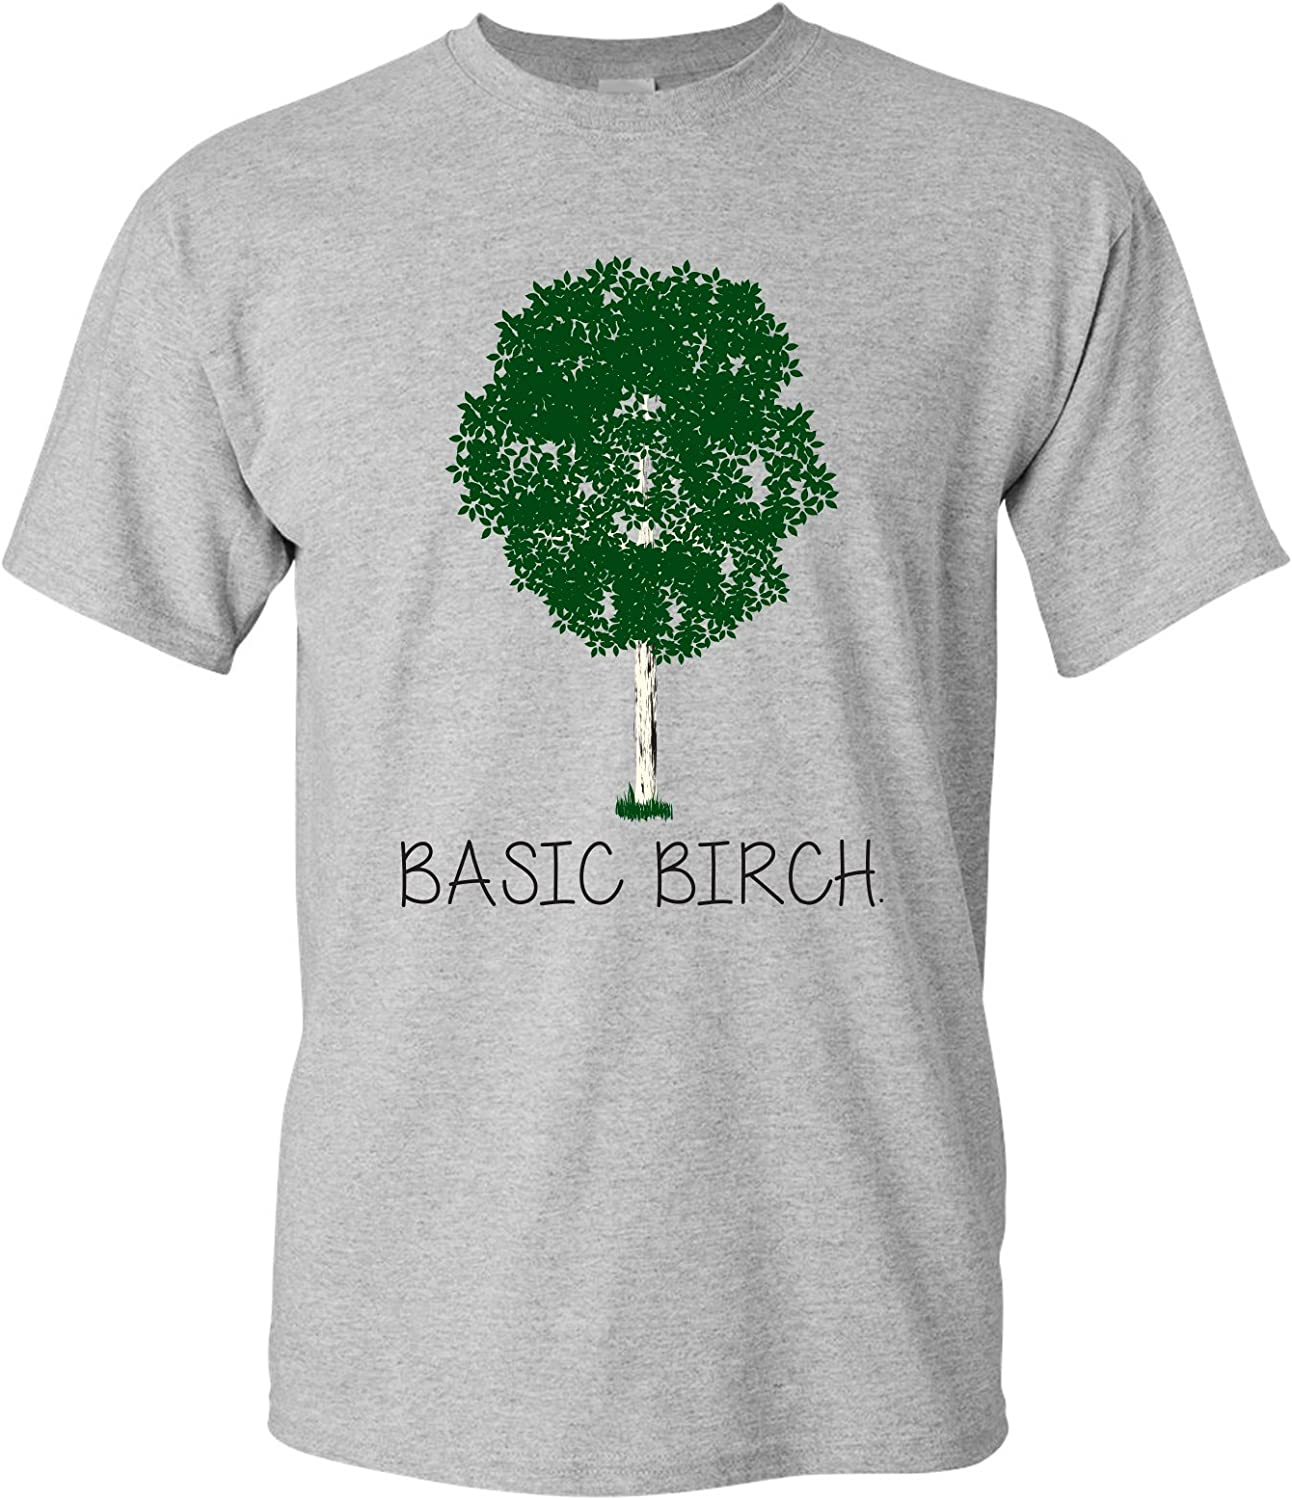 Basic Birch - Funny Nature Pun Tree Hugger Graphic T Shirt